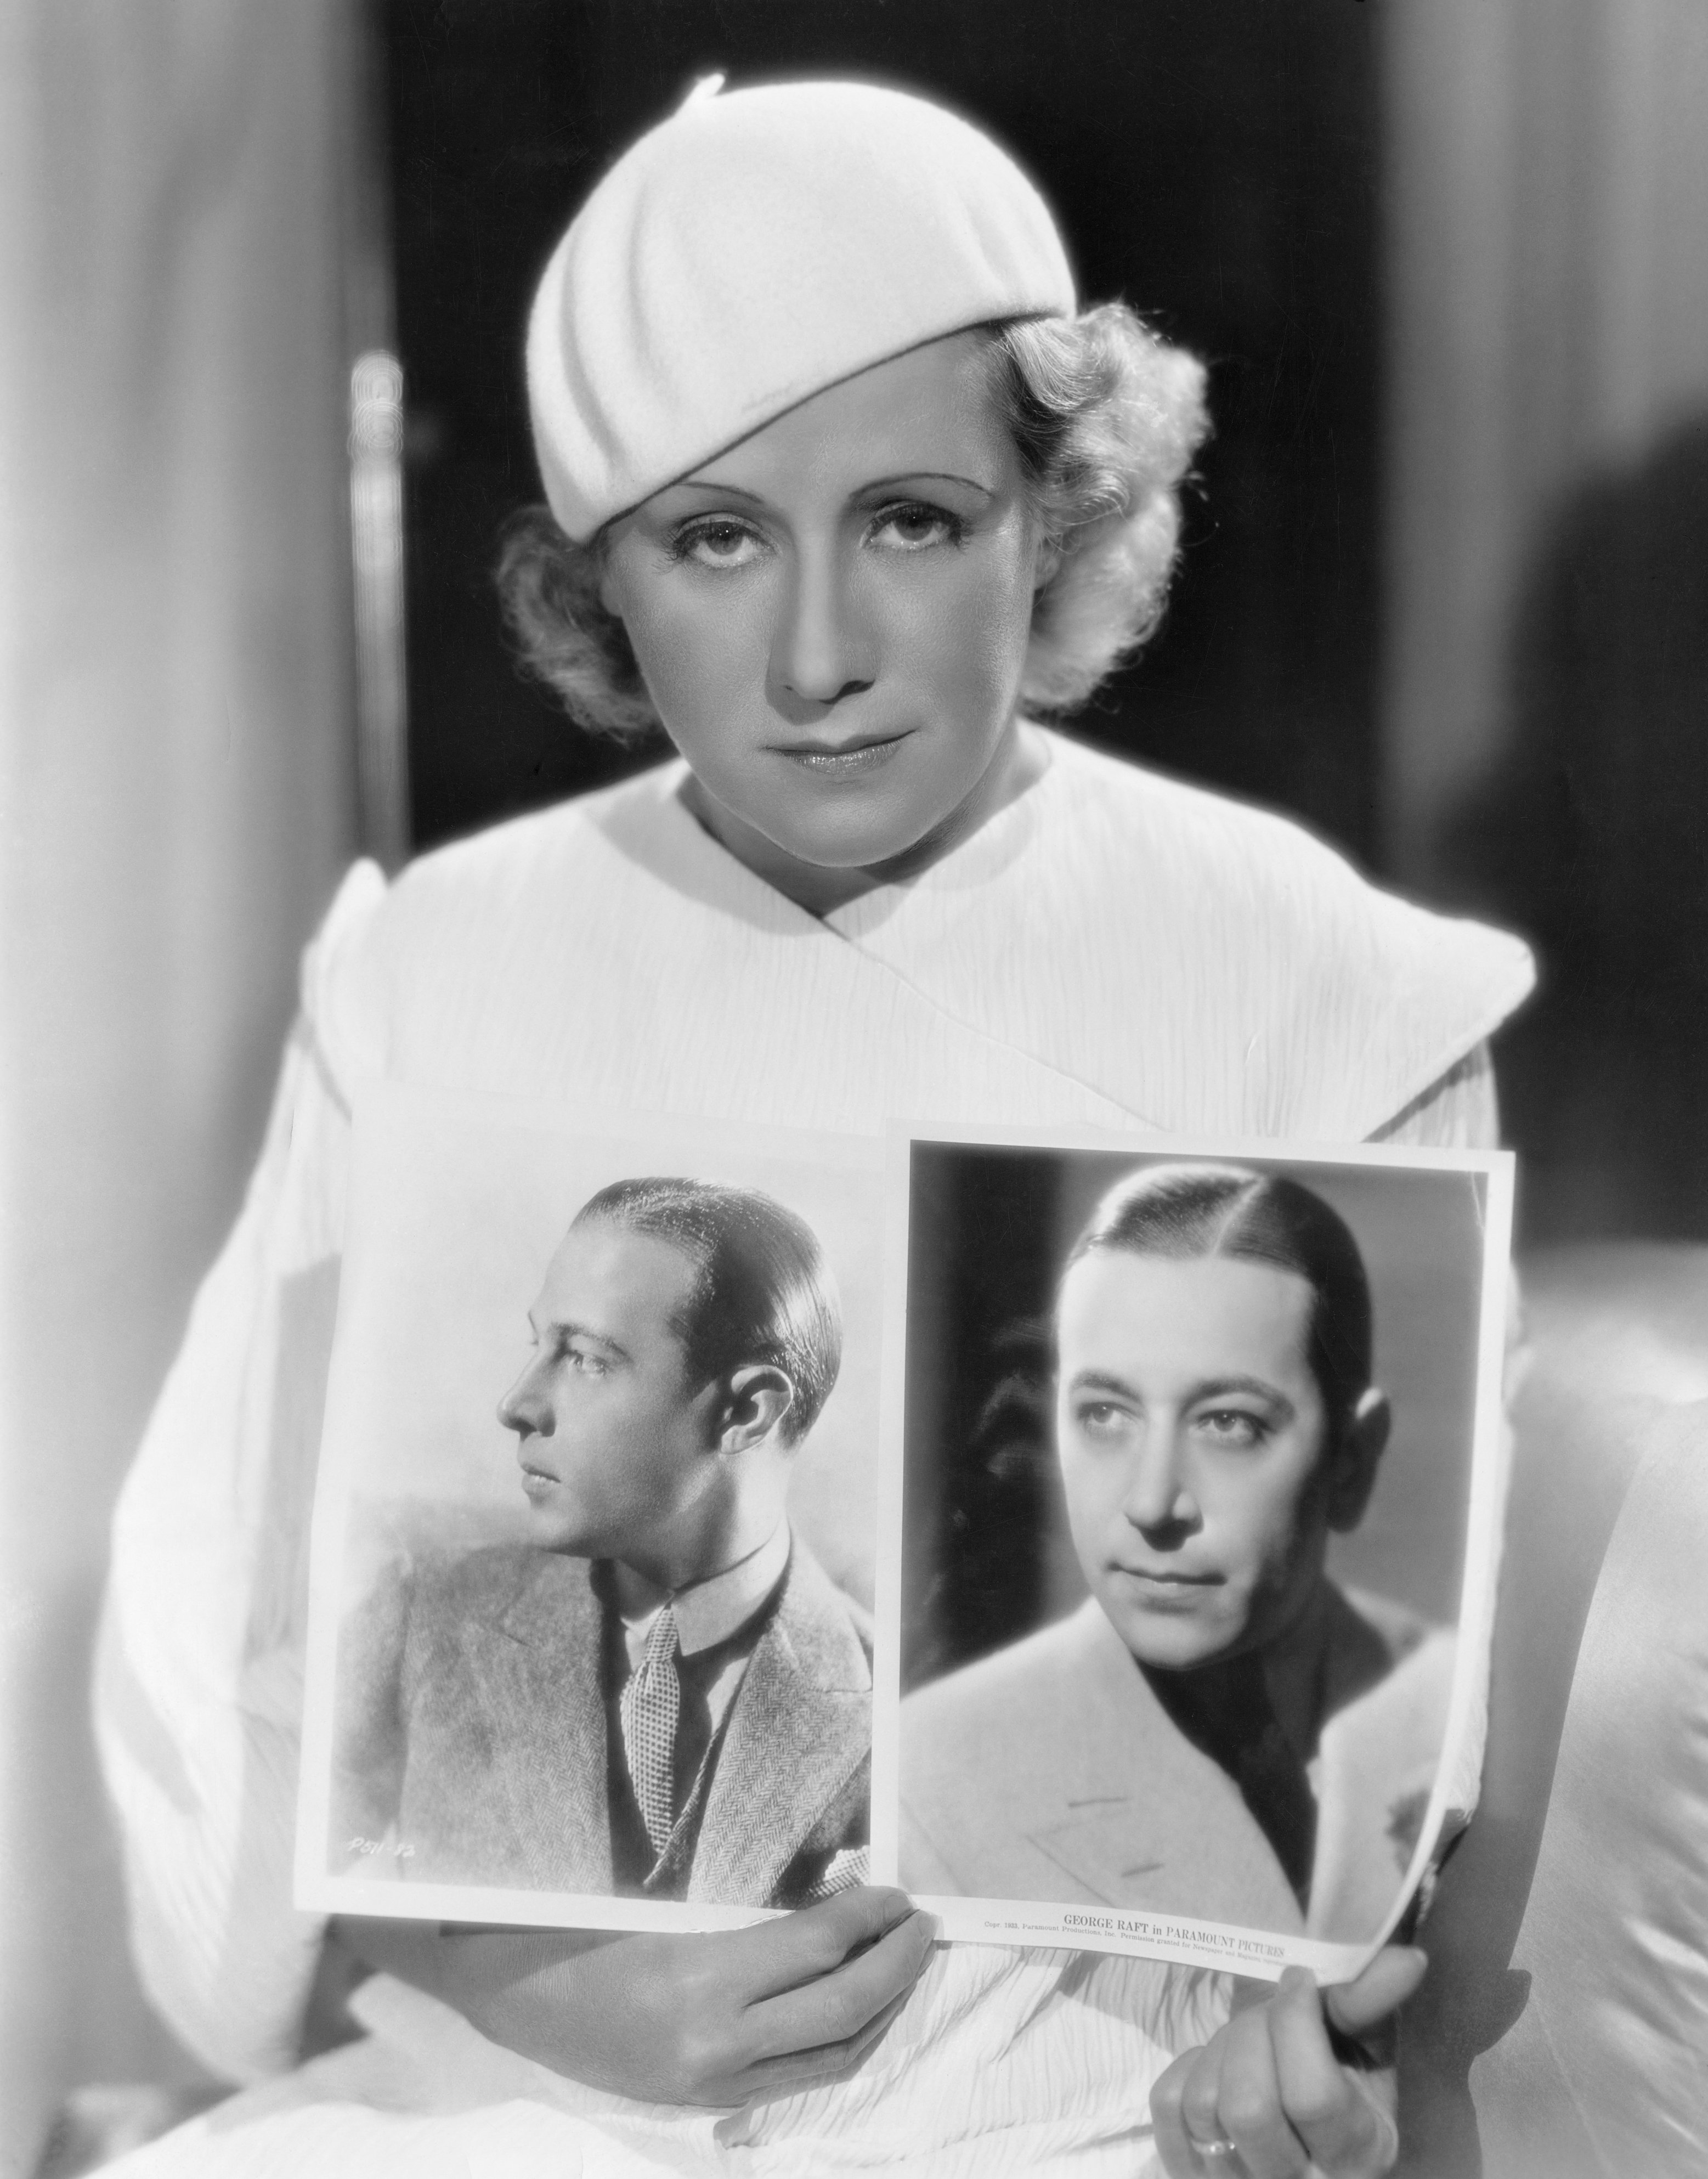 Jean Acker held up photos of her late ex-husband Rudolph Valentino and George Raft for comparison on 01 January, 1933 | Photo: Getty Images